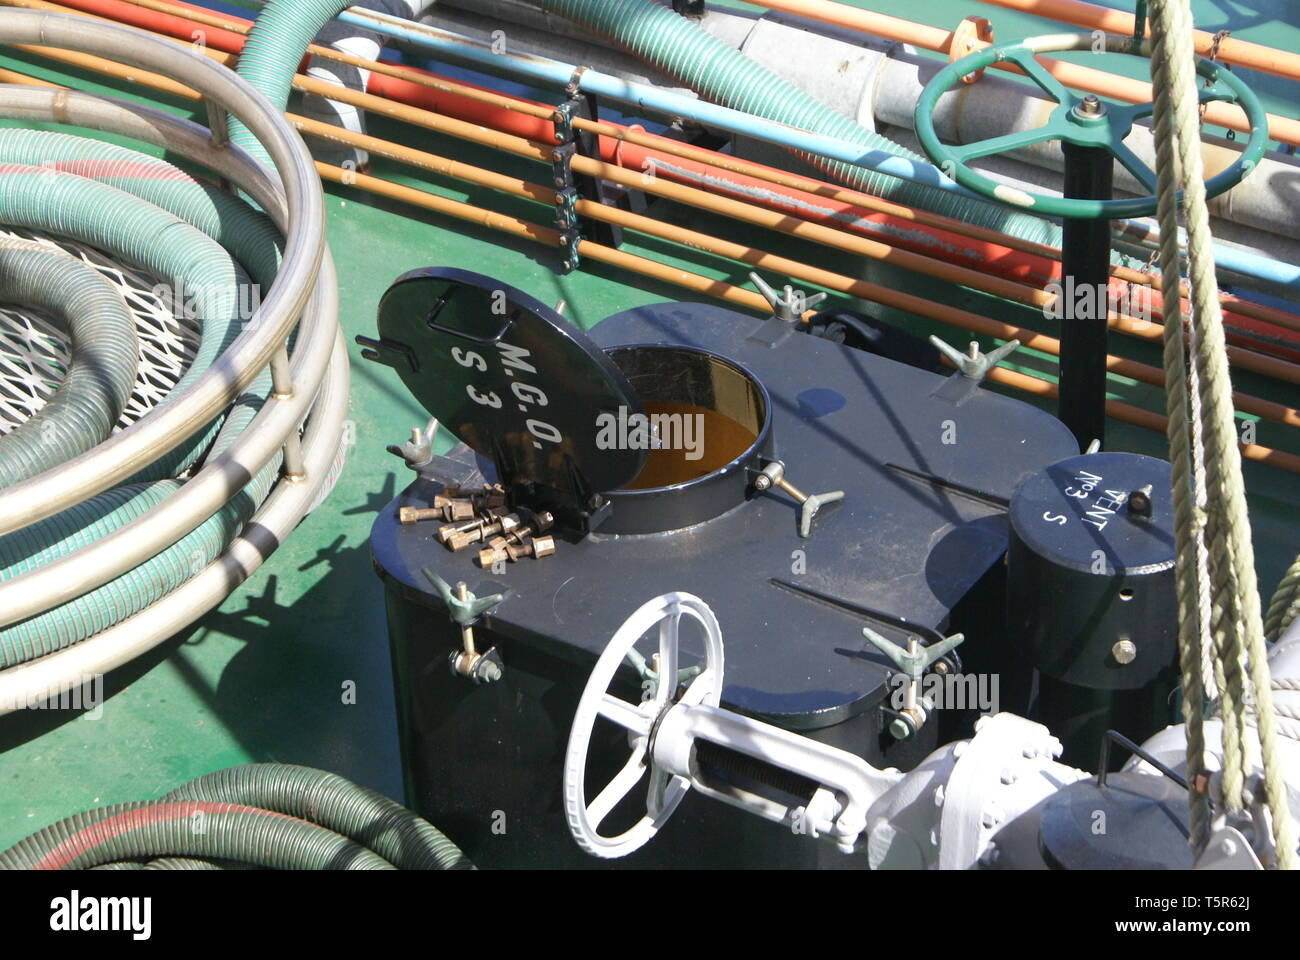 Bunker Barge Stock Photos & Bunker Barge Stock Images - Alamy